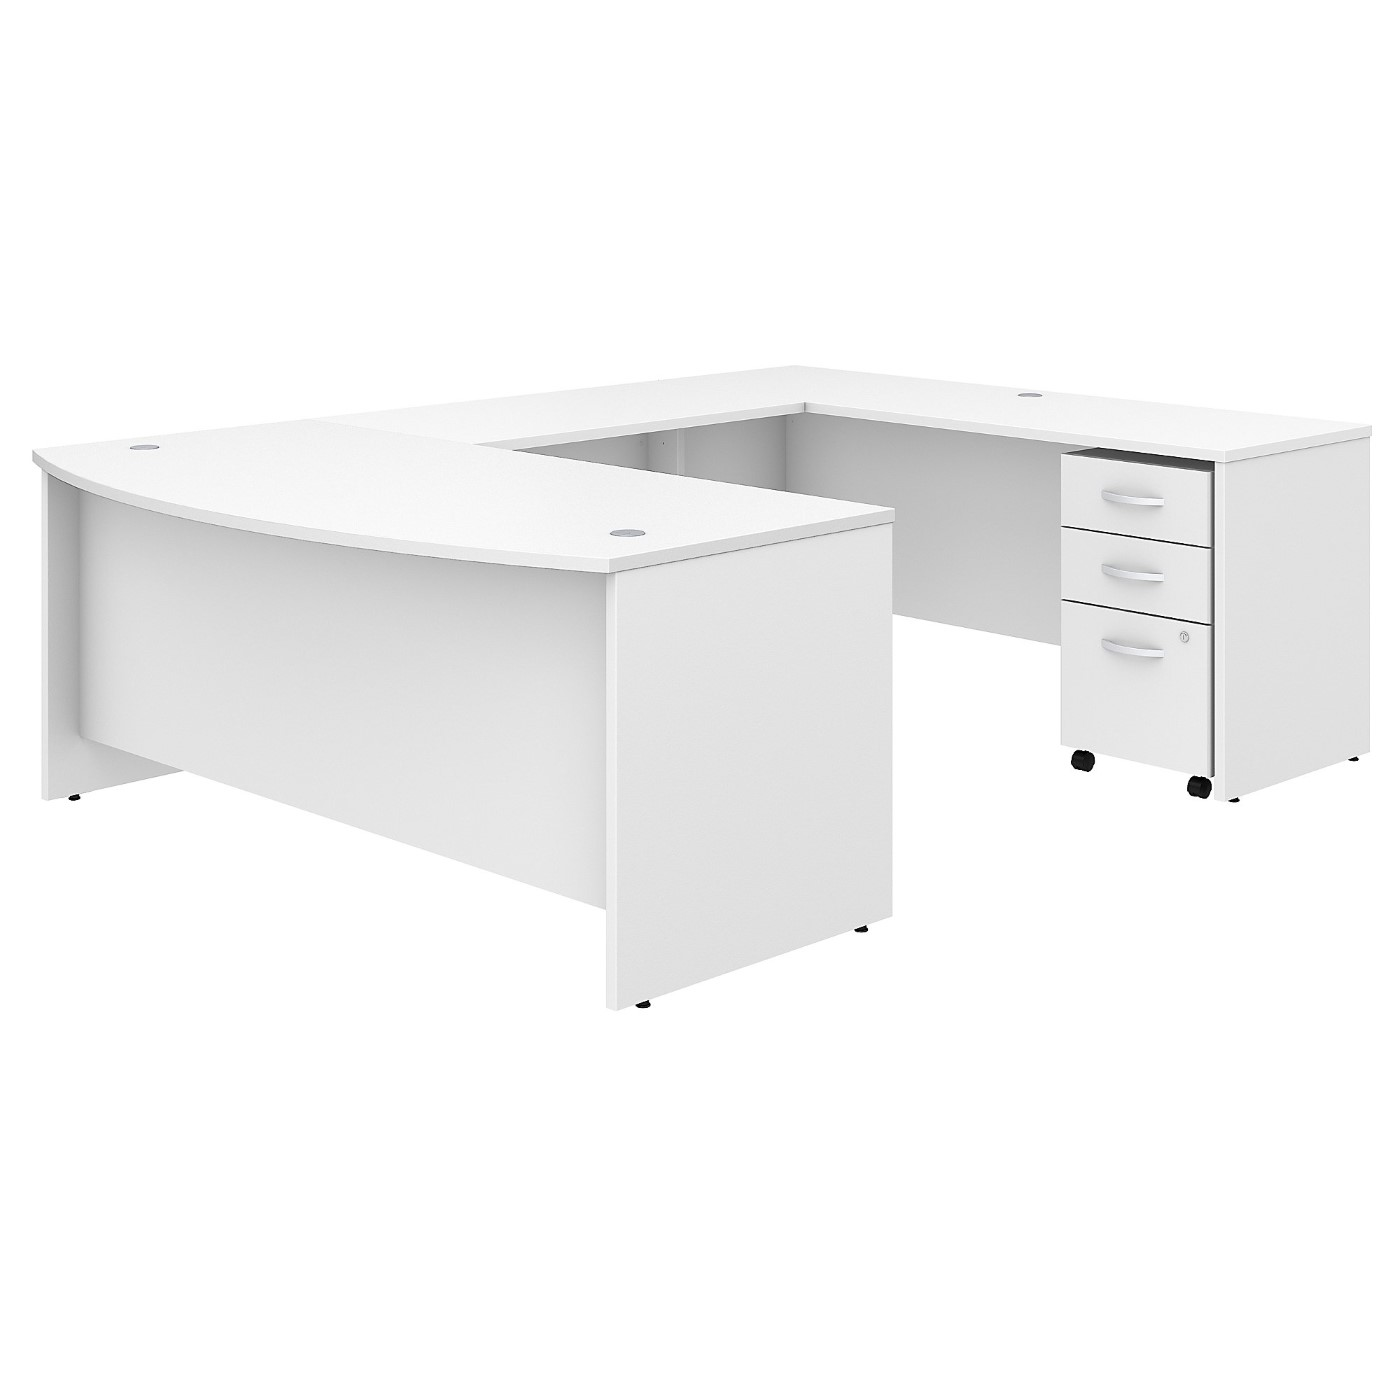 BUSH BUSINESS FURNITURE STUDIO C 72W X 36D U SHAPED DESK WITH MOBILE FILE CABINET. FREE SHIPPING SALE DEDUCT 10% MORE ENTER '10percent' IN COUPON CODE BOX WHILE CHECKING OUT.